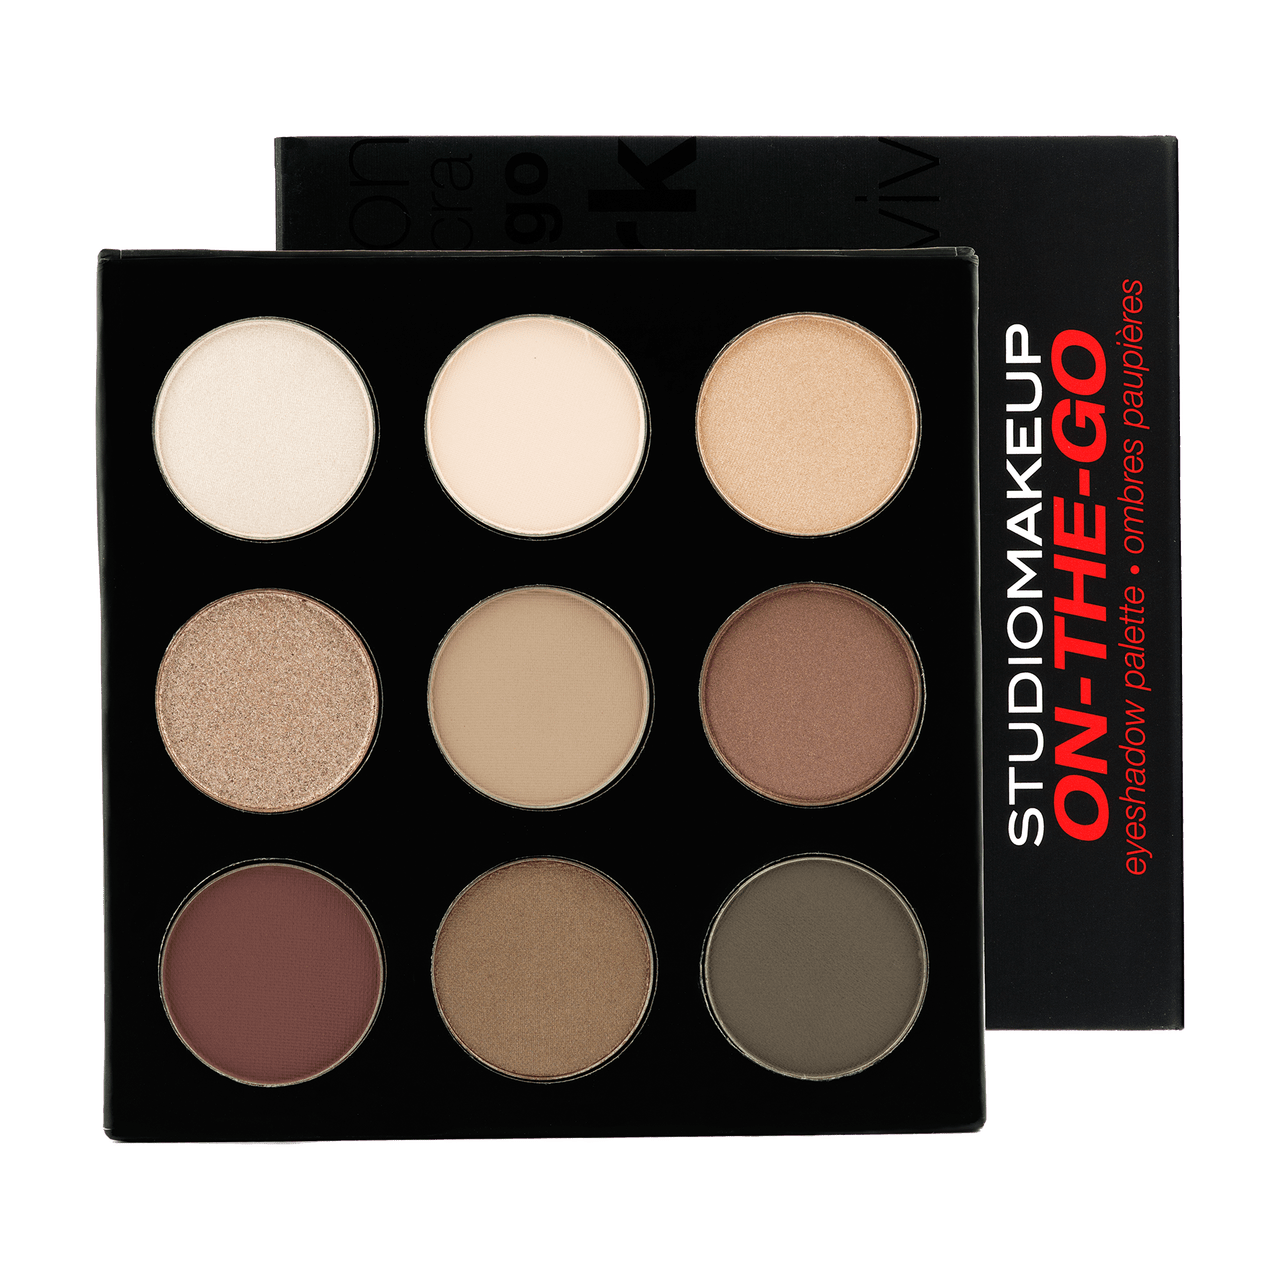 ON THE GO - EYESHADOW PALETTE - COOL DOWN - Studio Make Up US